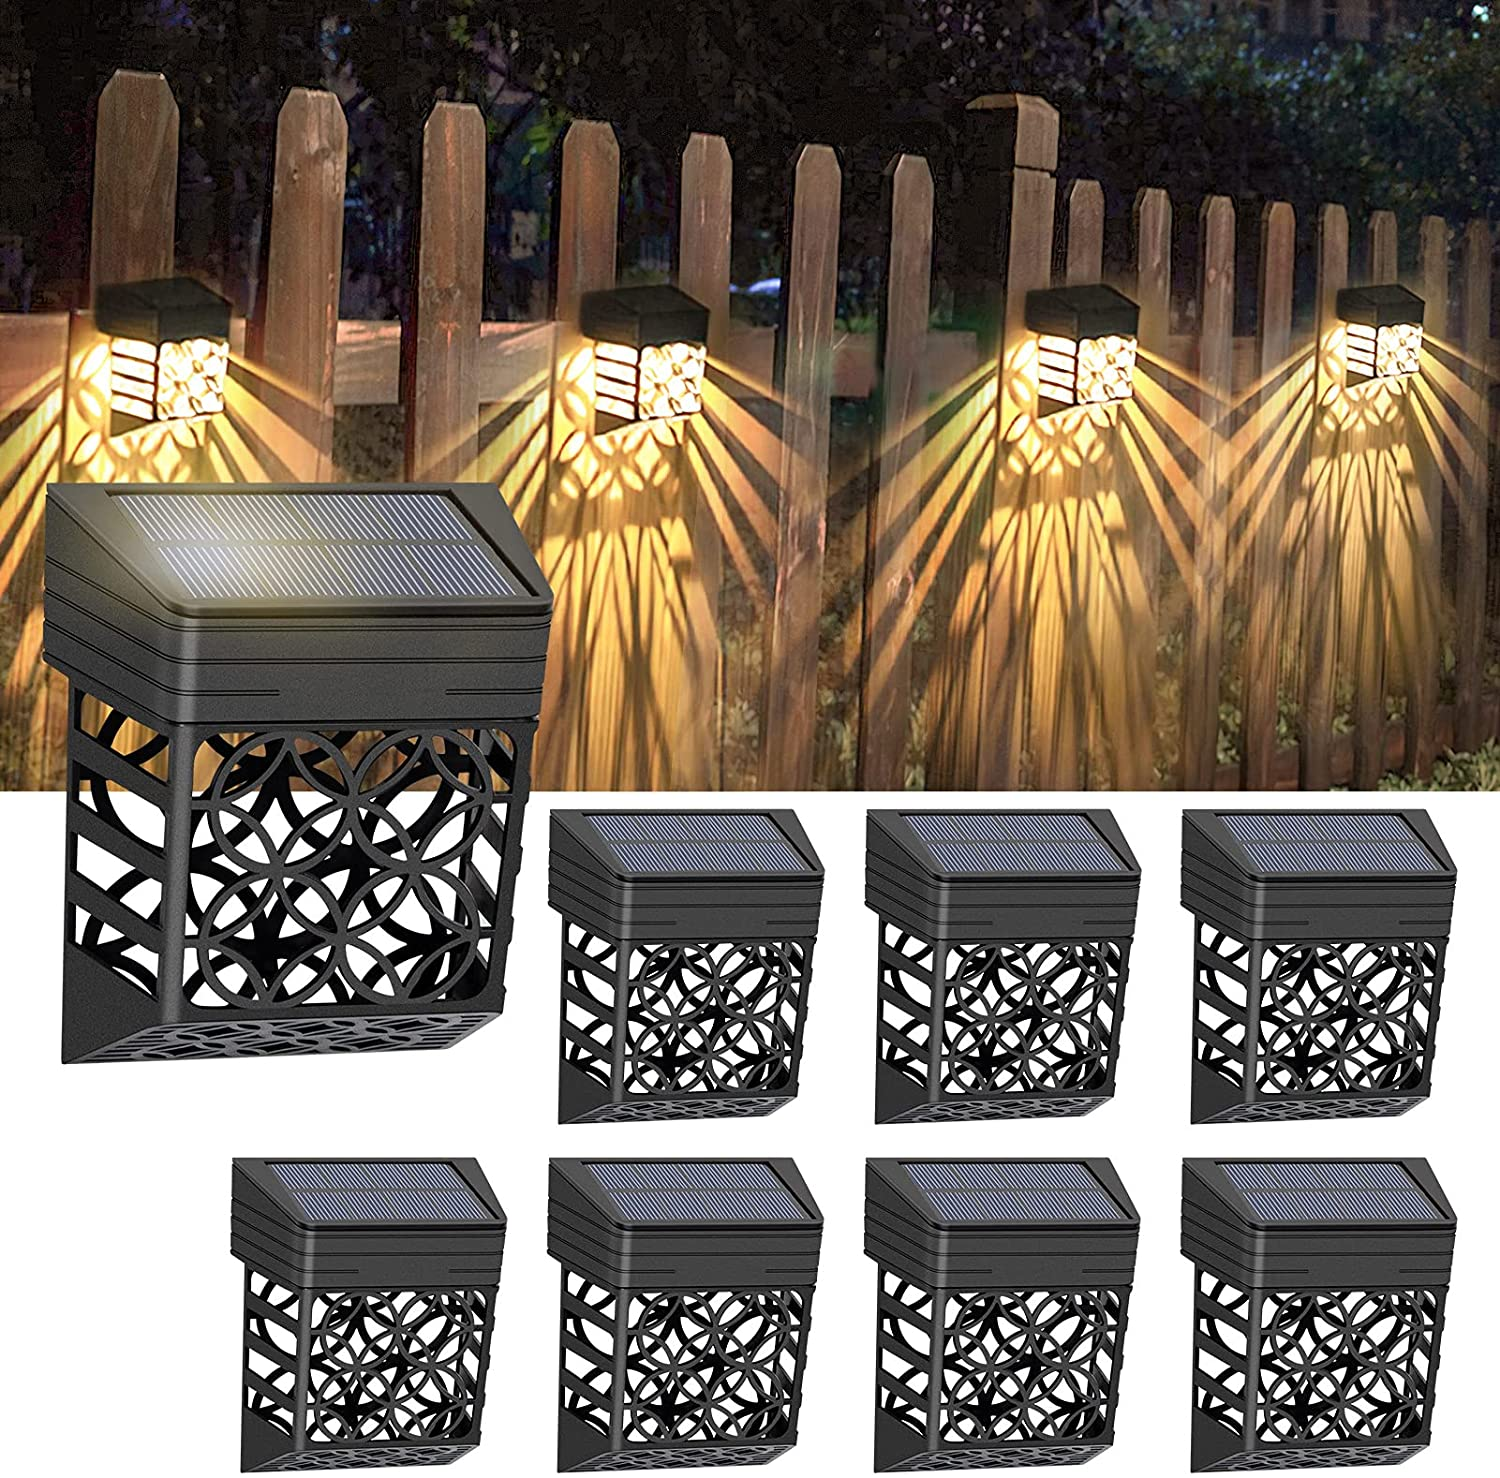 Litake 8Pack Solar Fence Lights Outdoor Solar Deck Lights Waterproof Decorative Solar Fence Wall Lighting for Garden Decor Patio Yard Step Pool Stair